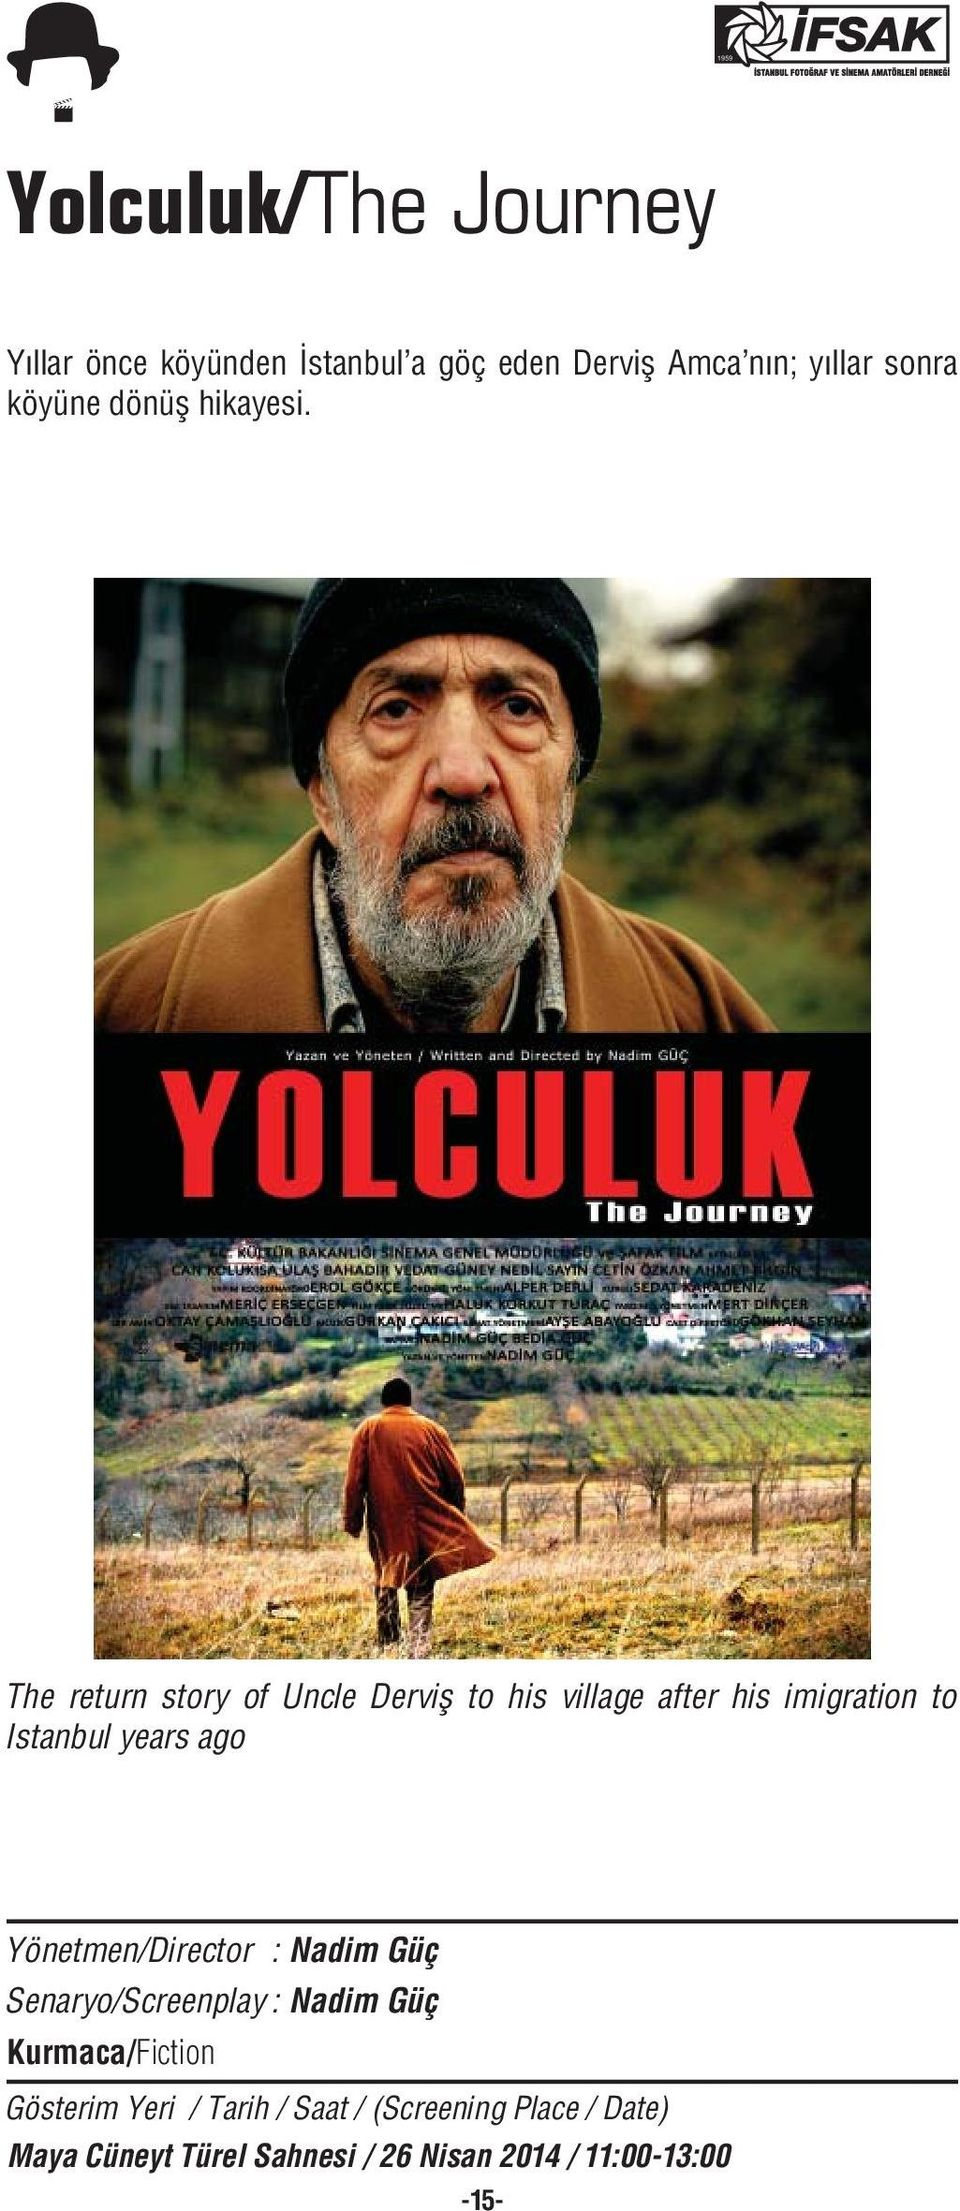 The return story of Uncle Derviş to his village after his imigration to Istanbul